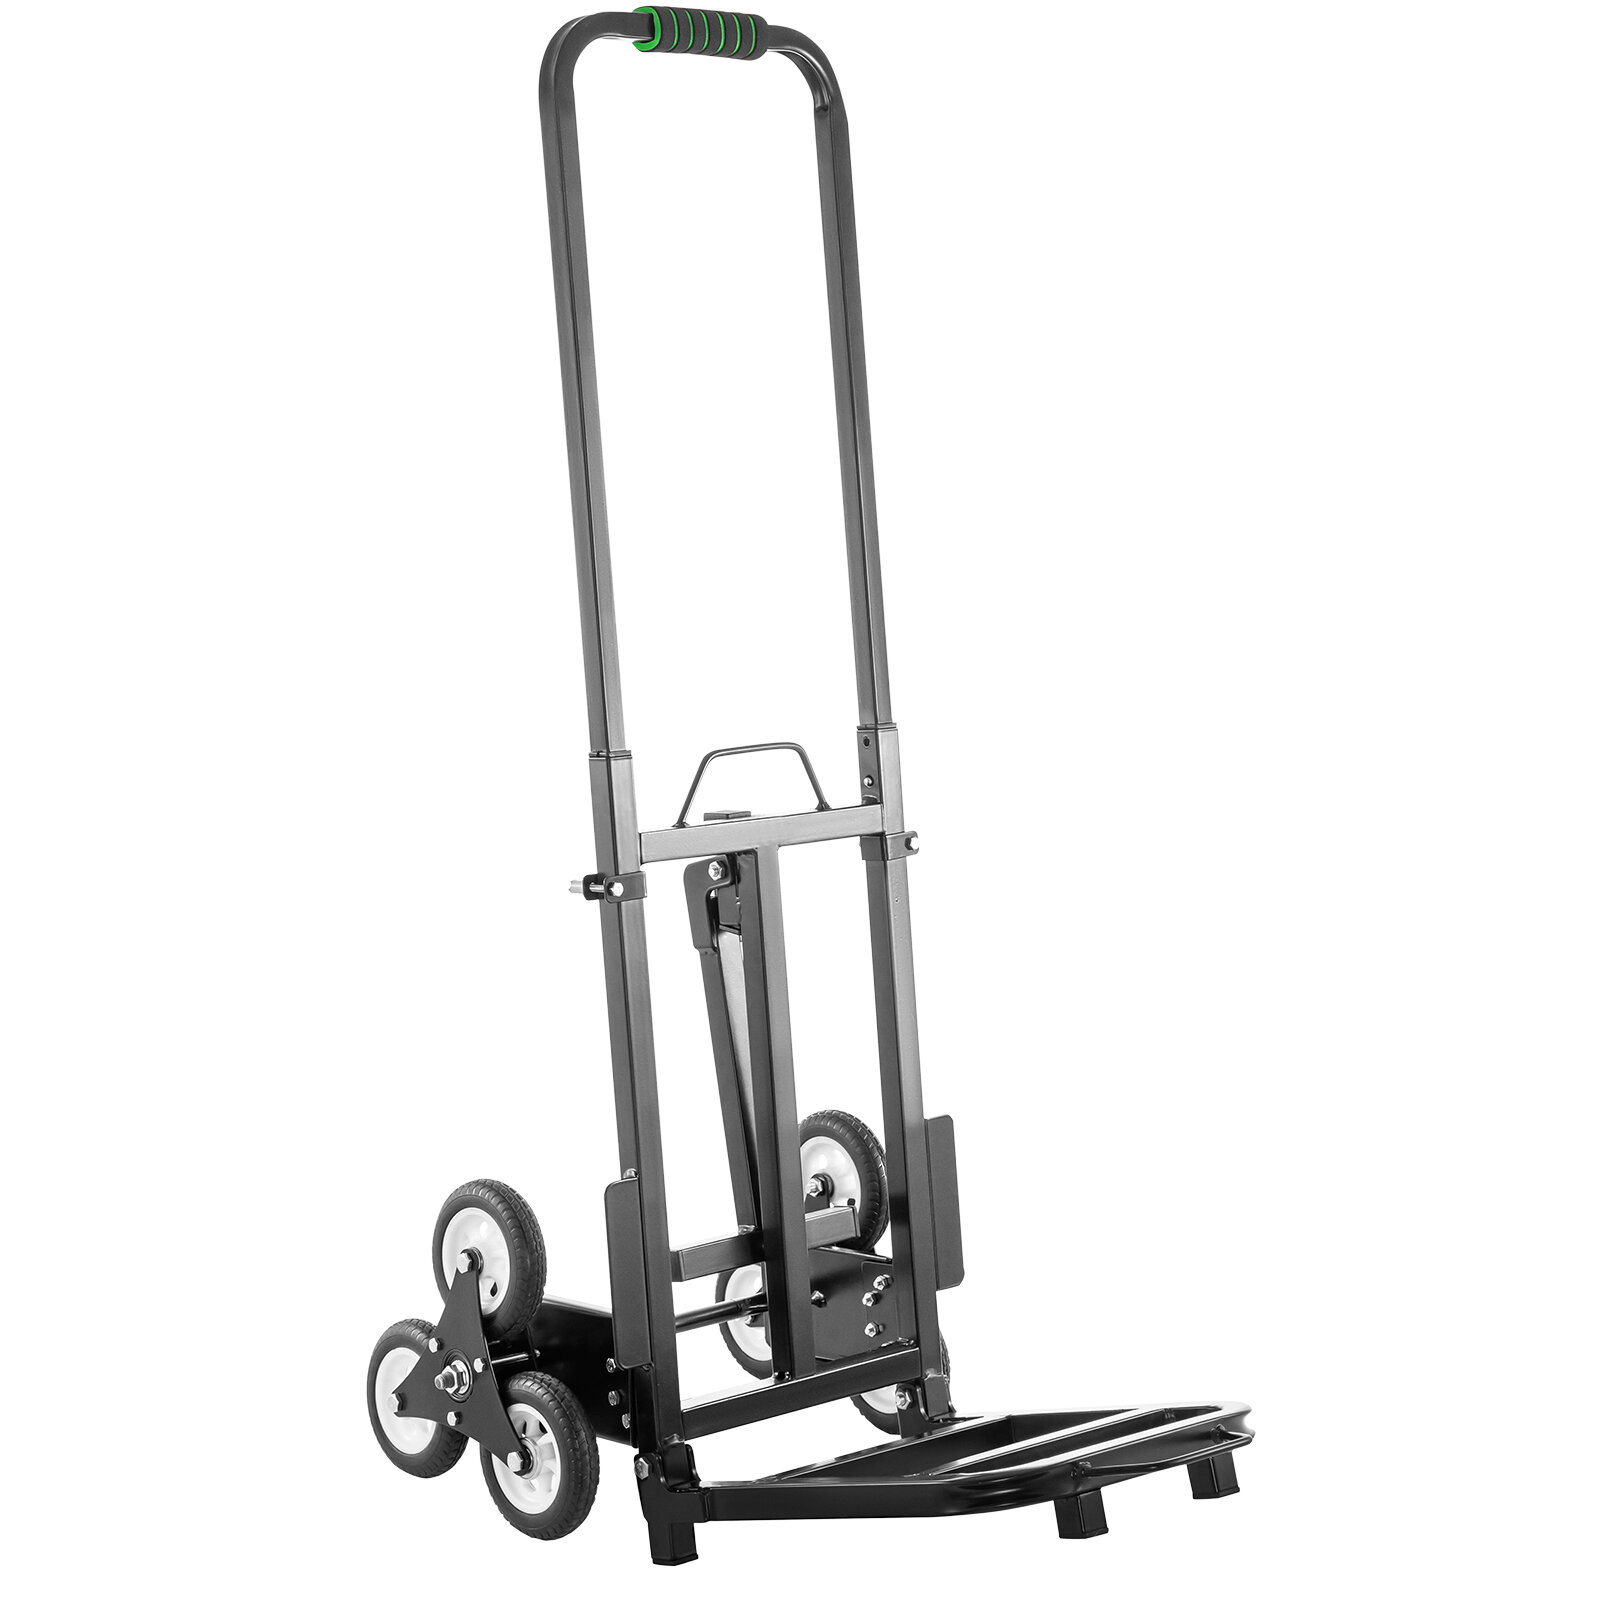 Vevor 330 Lb Capacity Portable Hand Truck Dolly Wayfair